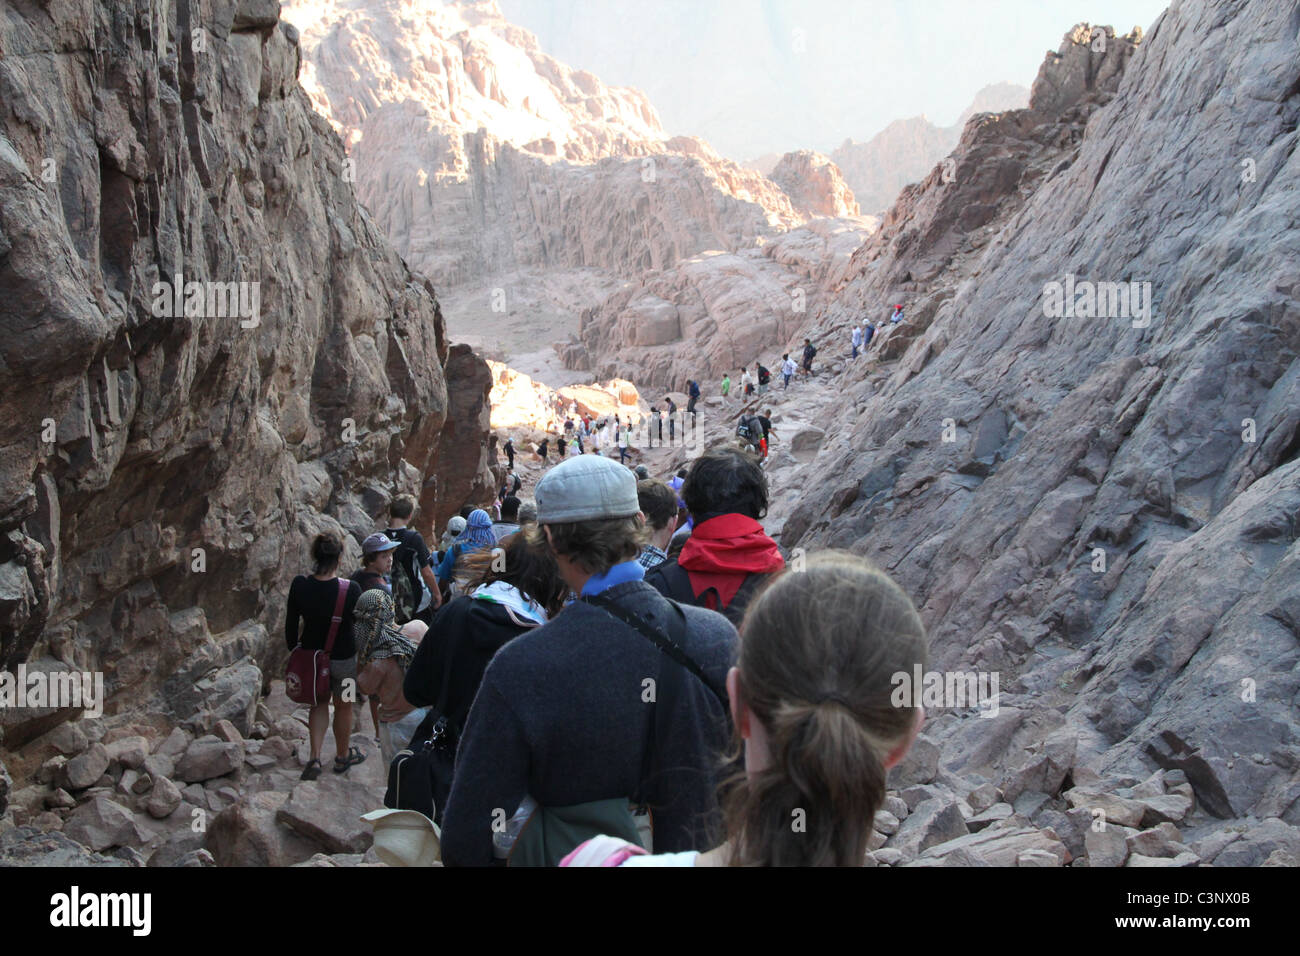 Visitors climbing down from the summit of Mount Sinai (Jebel Musa), Egypt. - Stock Image